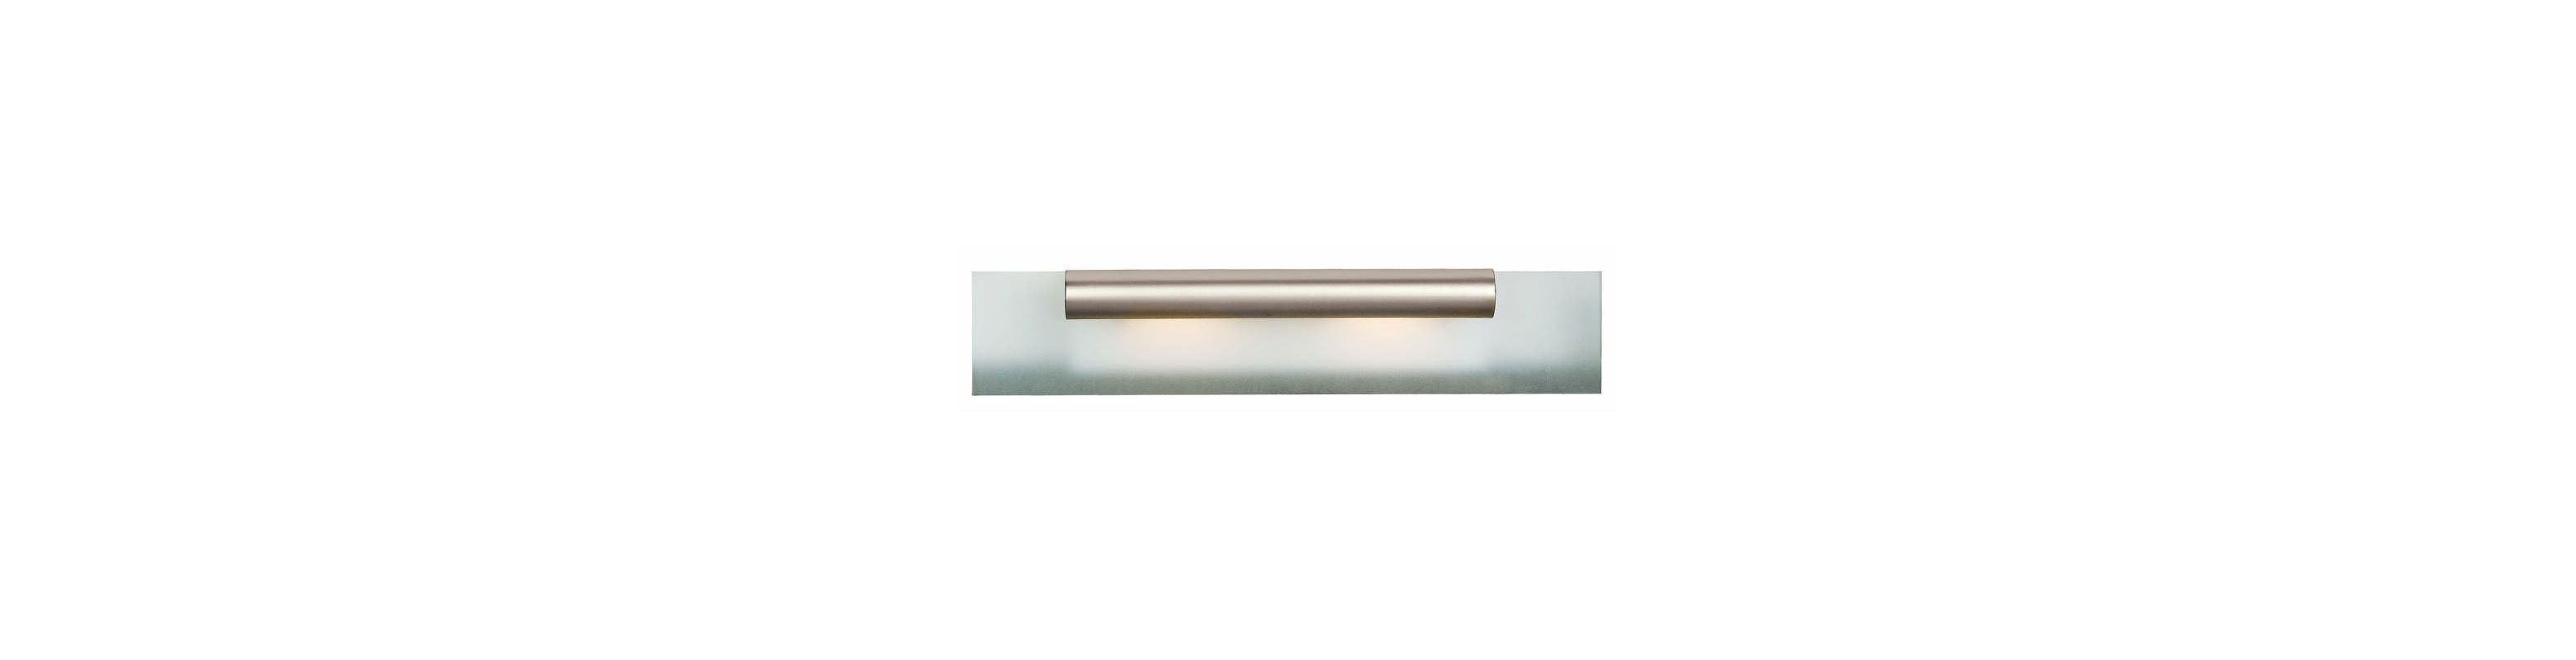 "Access Lighting 62062 Roto 2 Light 24"" Wide Vanity Strip with Frosted"